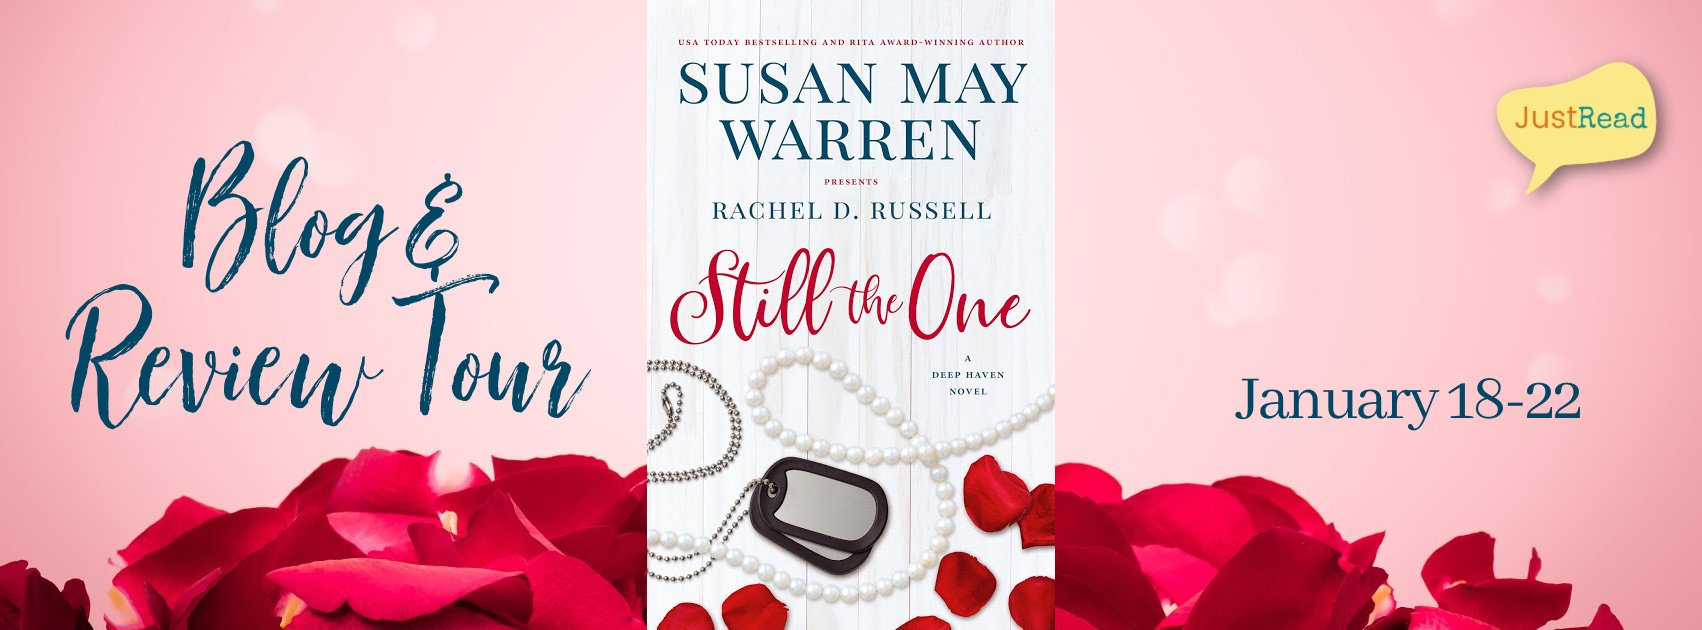 Welcome to the Still the One Blog + Review Tour & Giveaway!